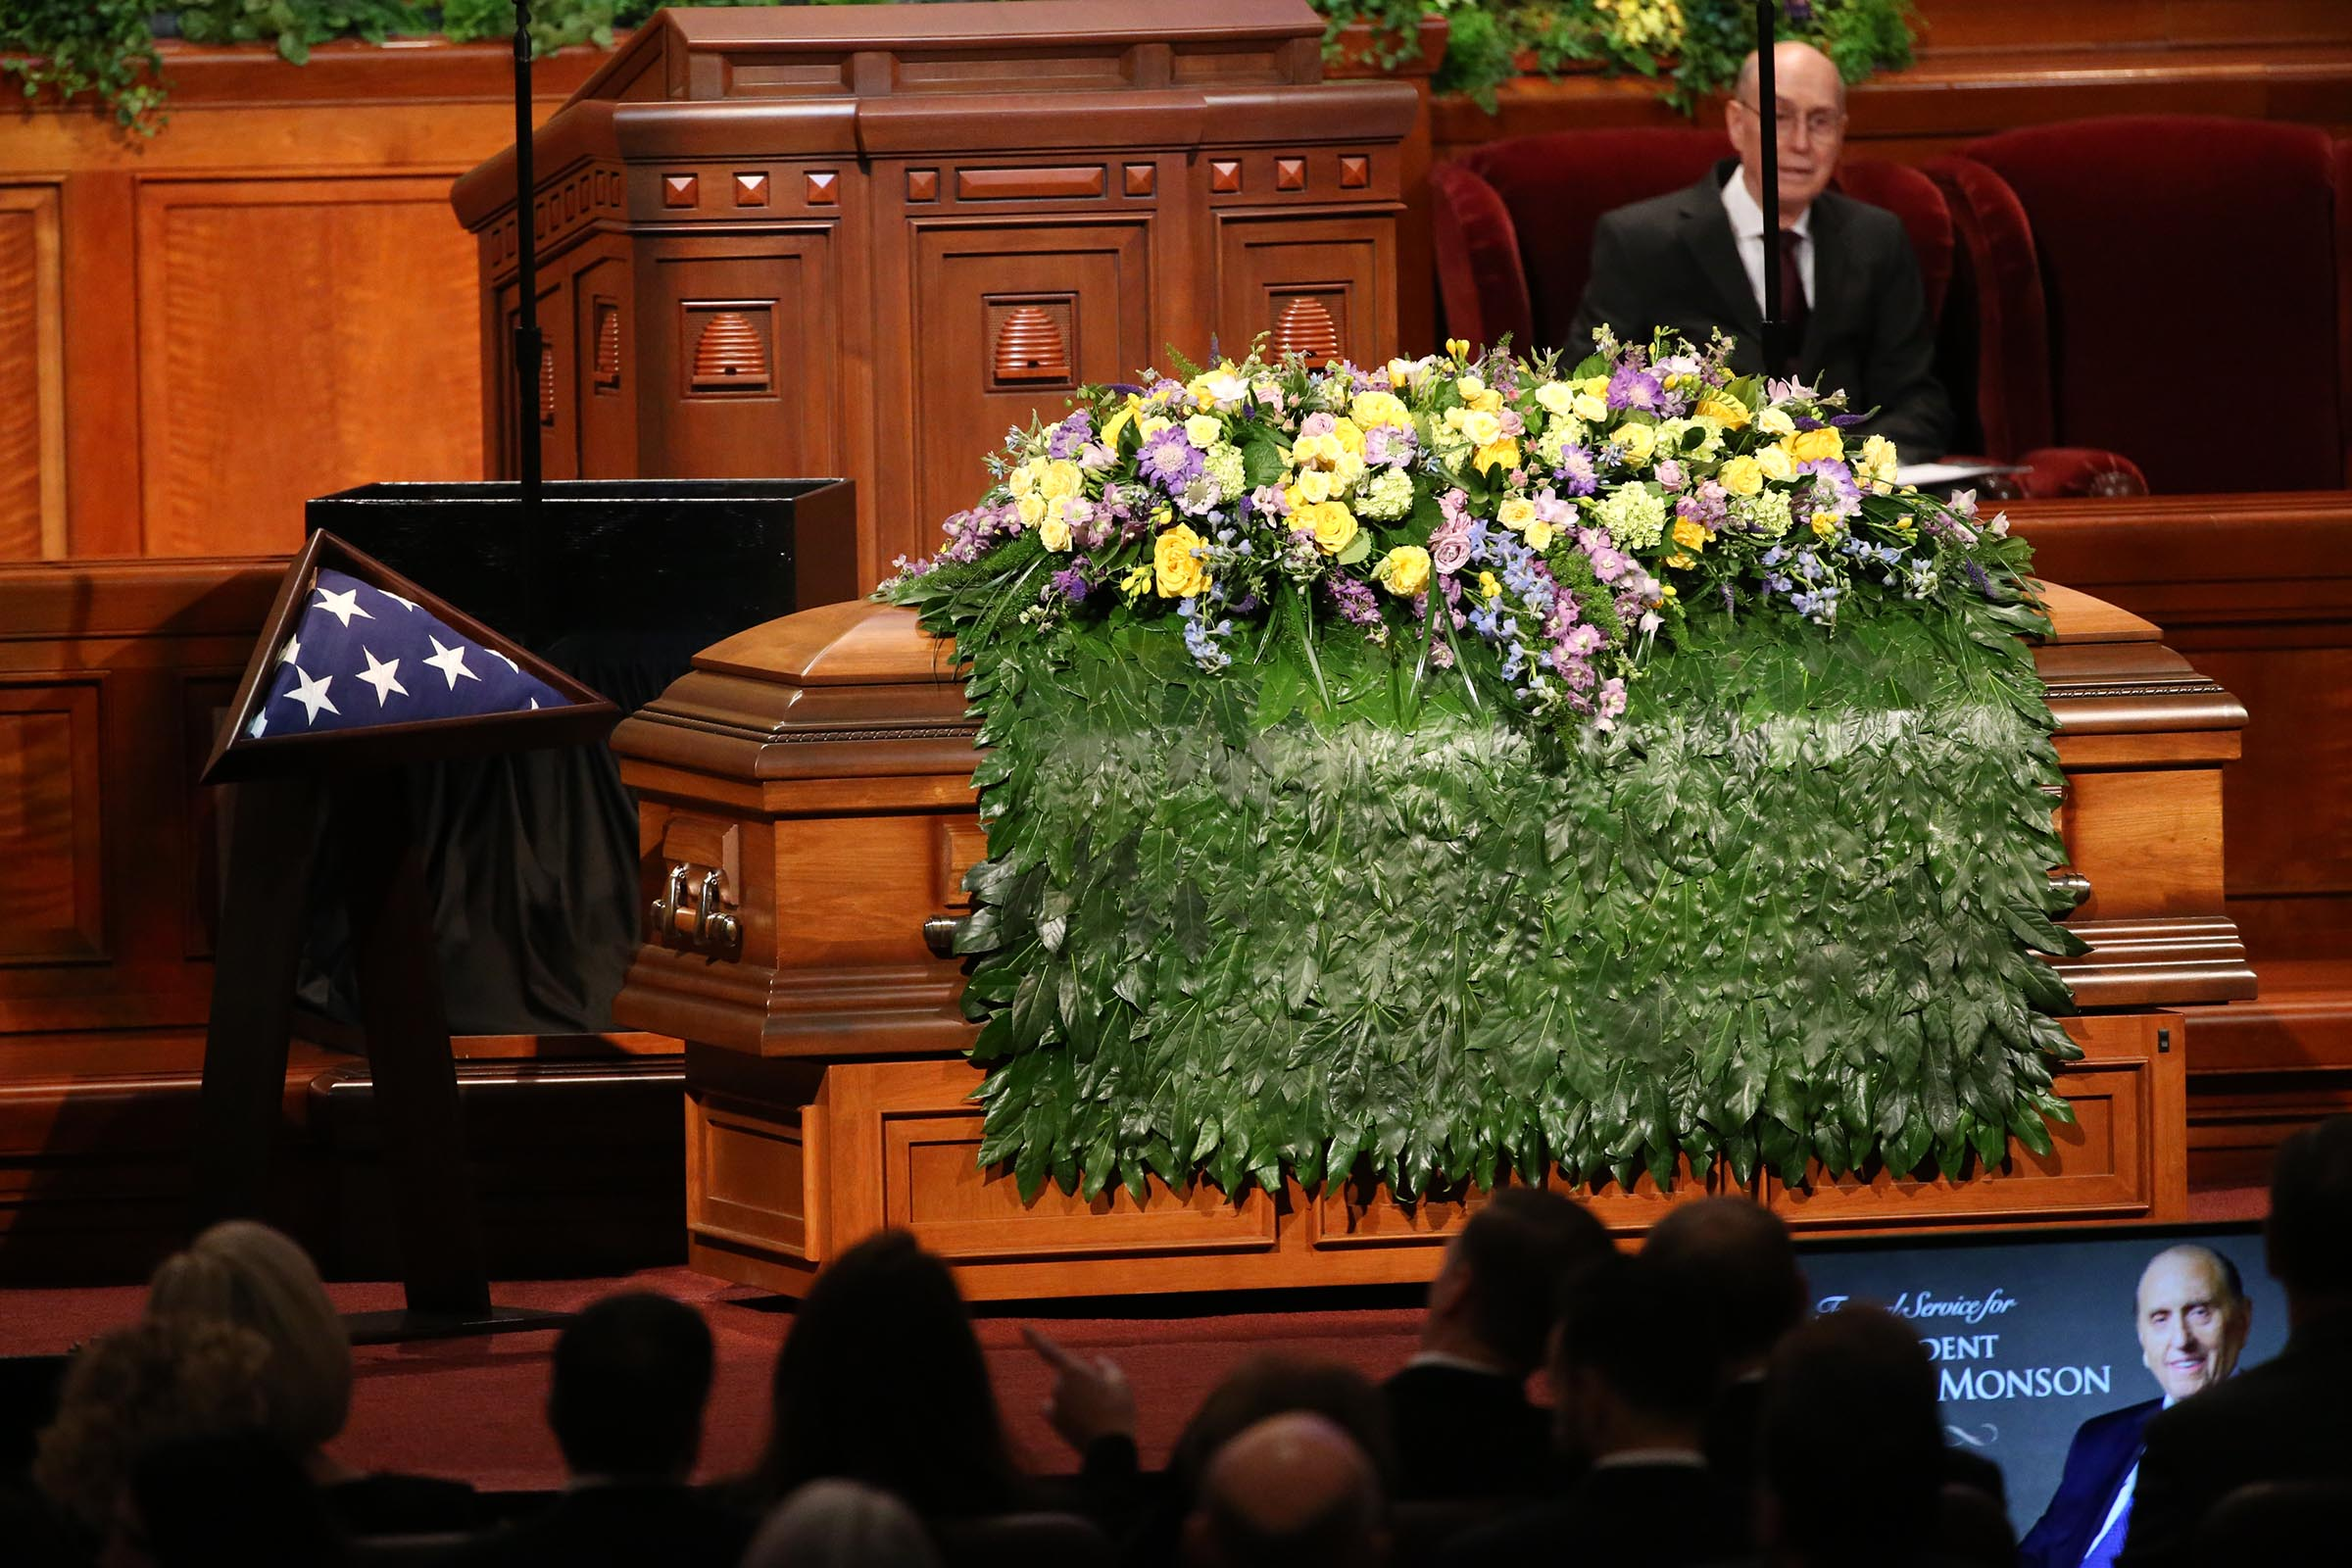 President Thomas S. Monson's casket is draped with flowers before the start of his funeral at the Conference Center in Salt Lake City on Friday, Jan. 12, 2018.